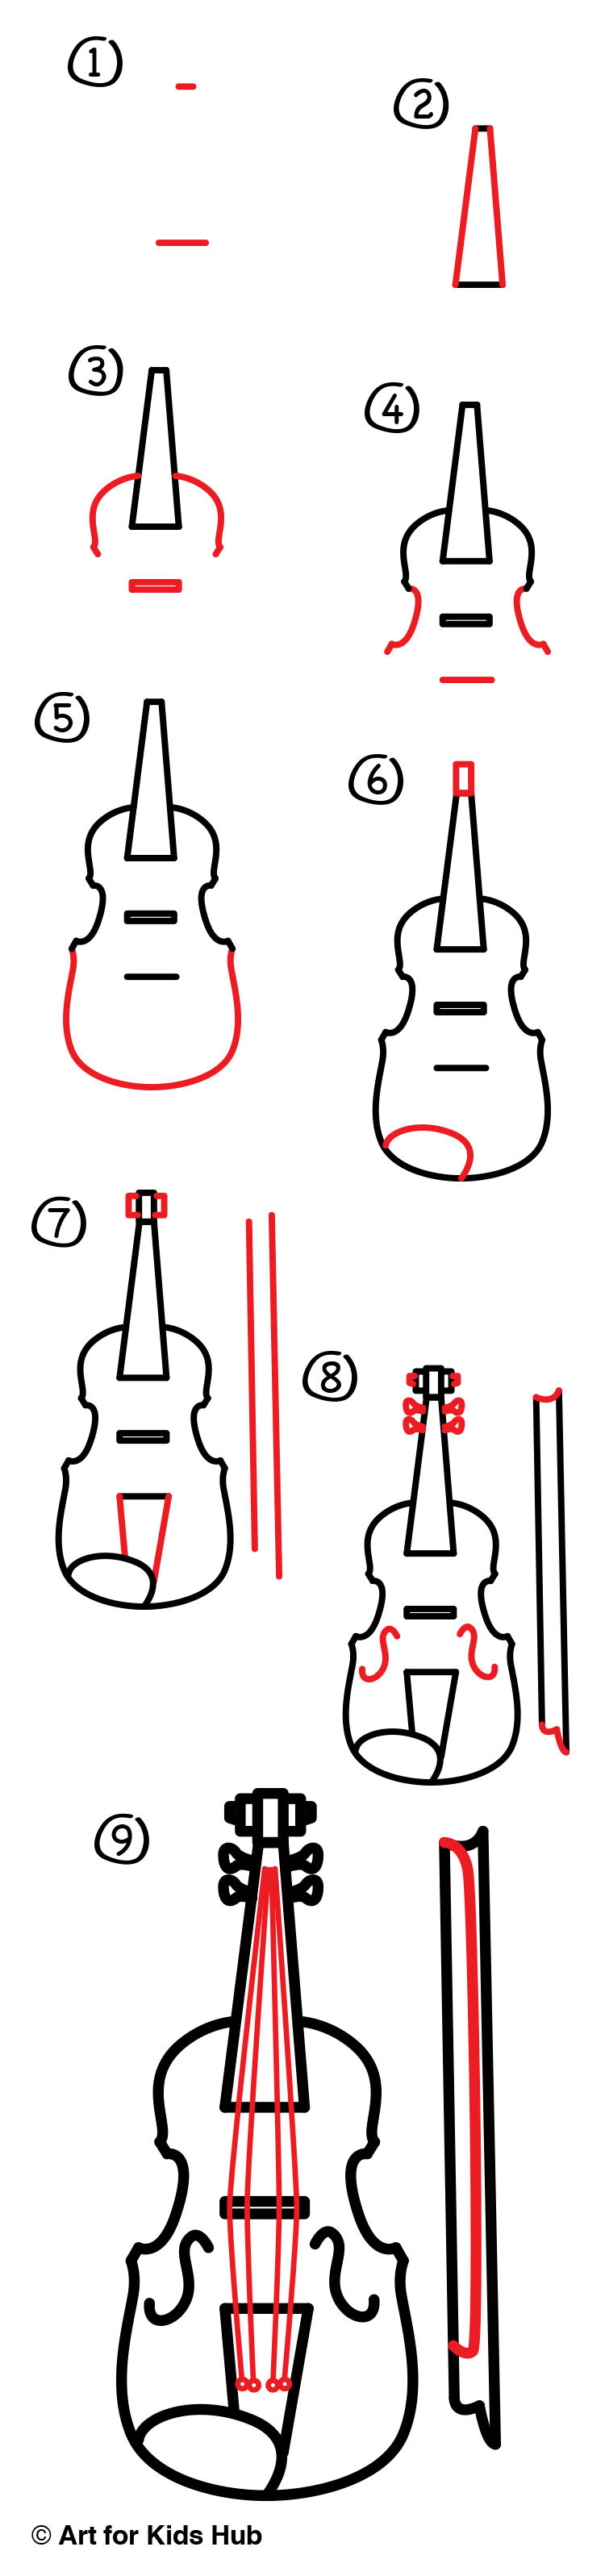 how to draw a violin art for kids hub